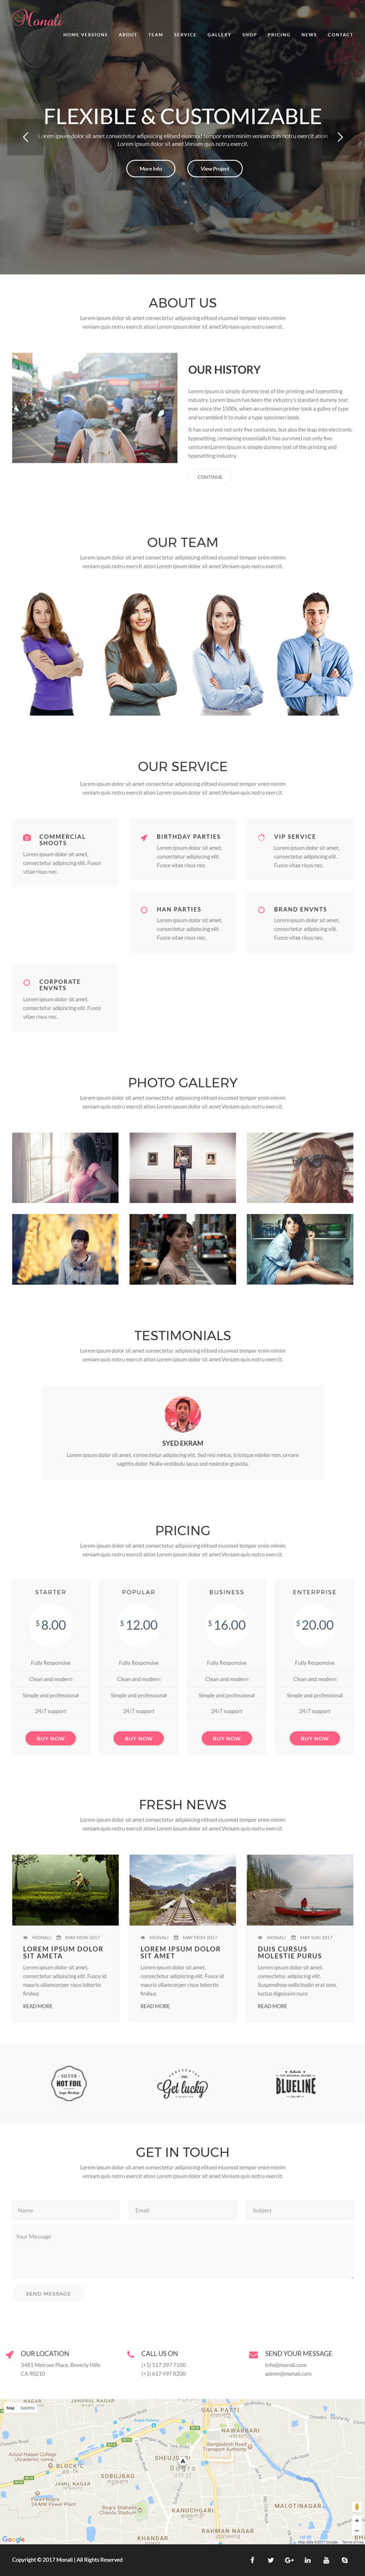 Monali - Business, Agency, Corporate WordPress Theme